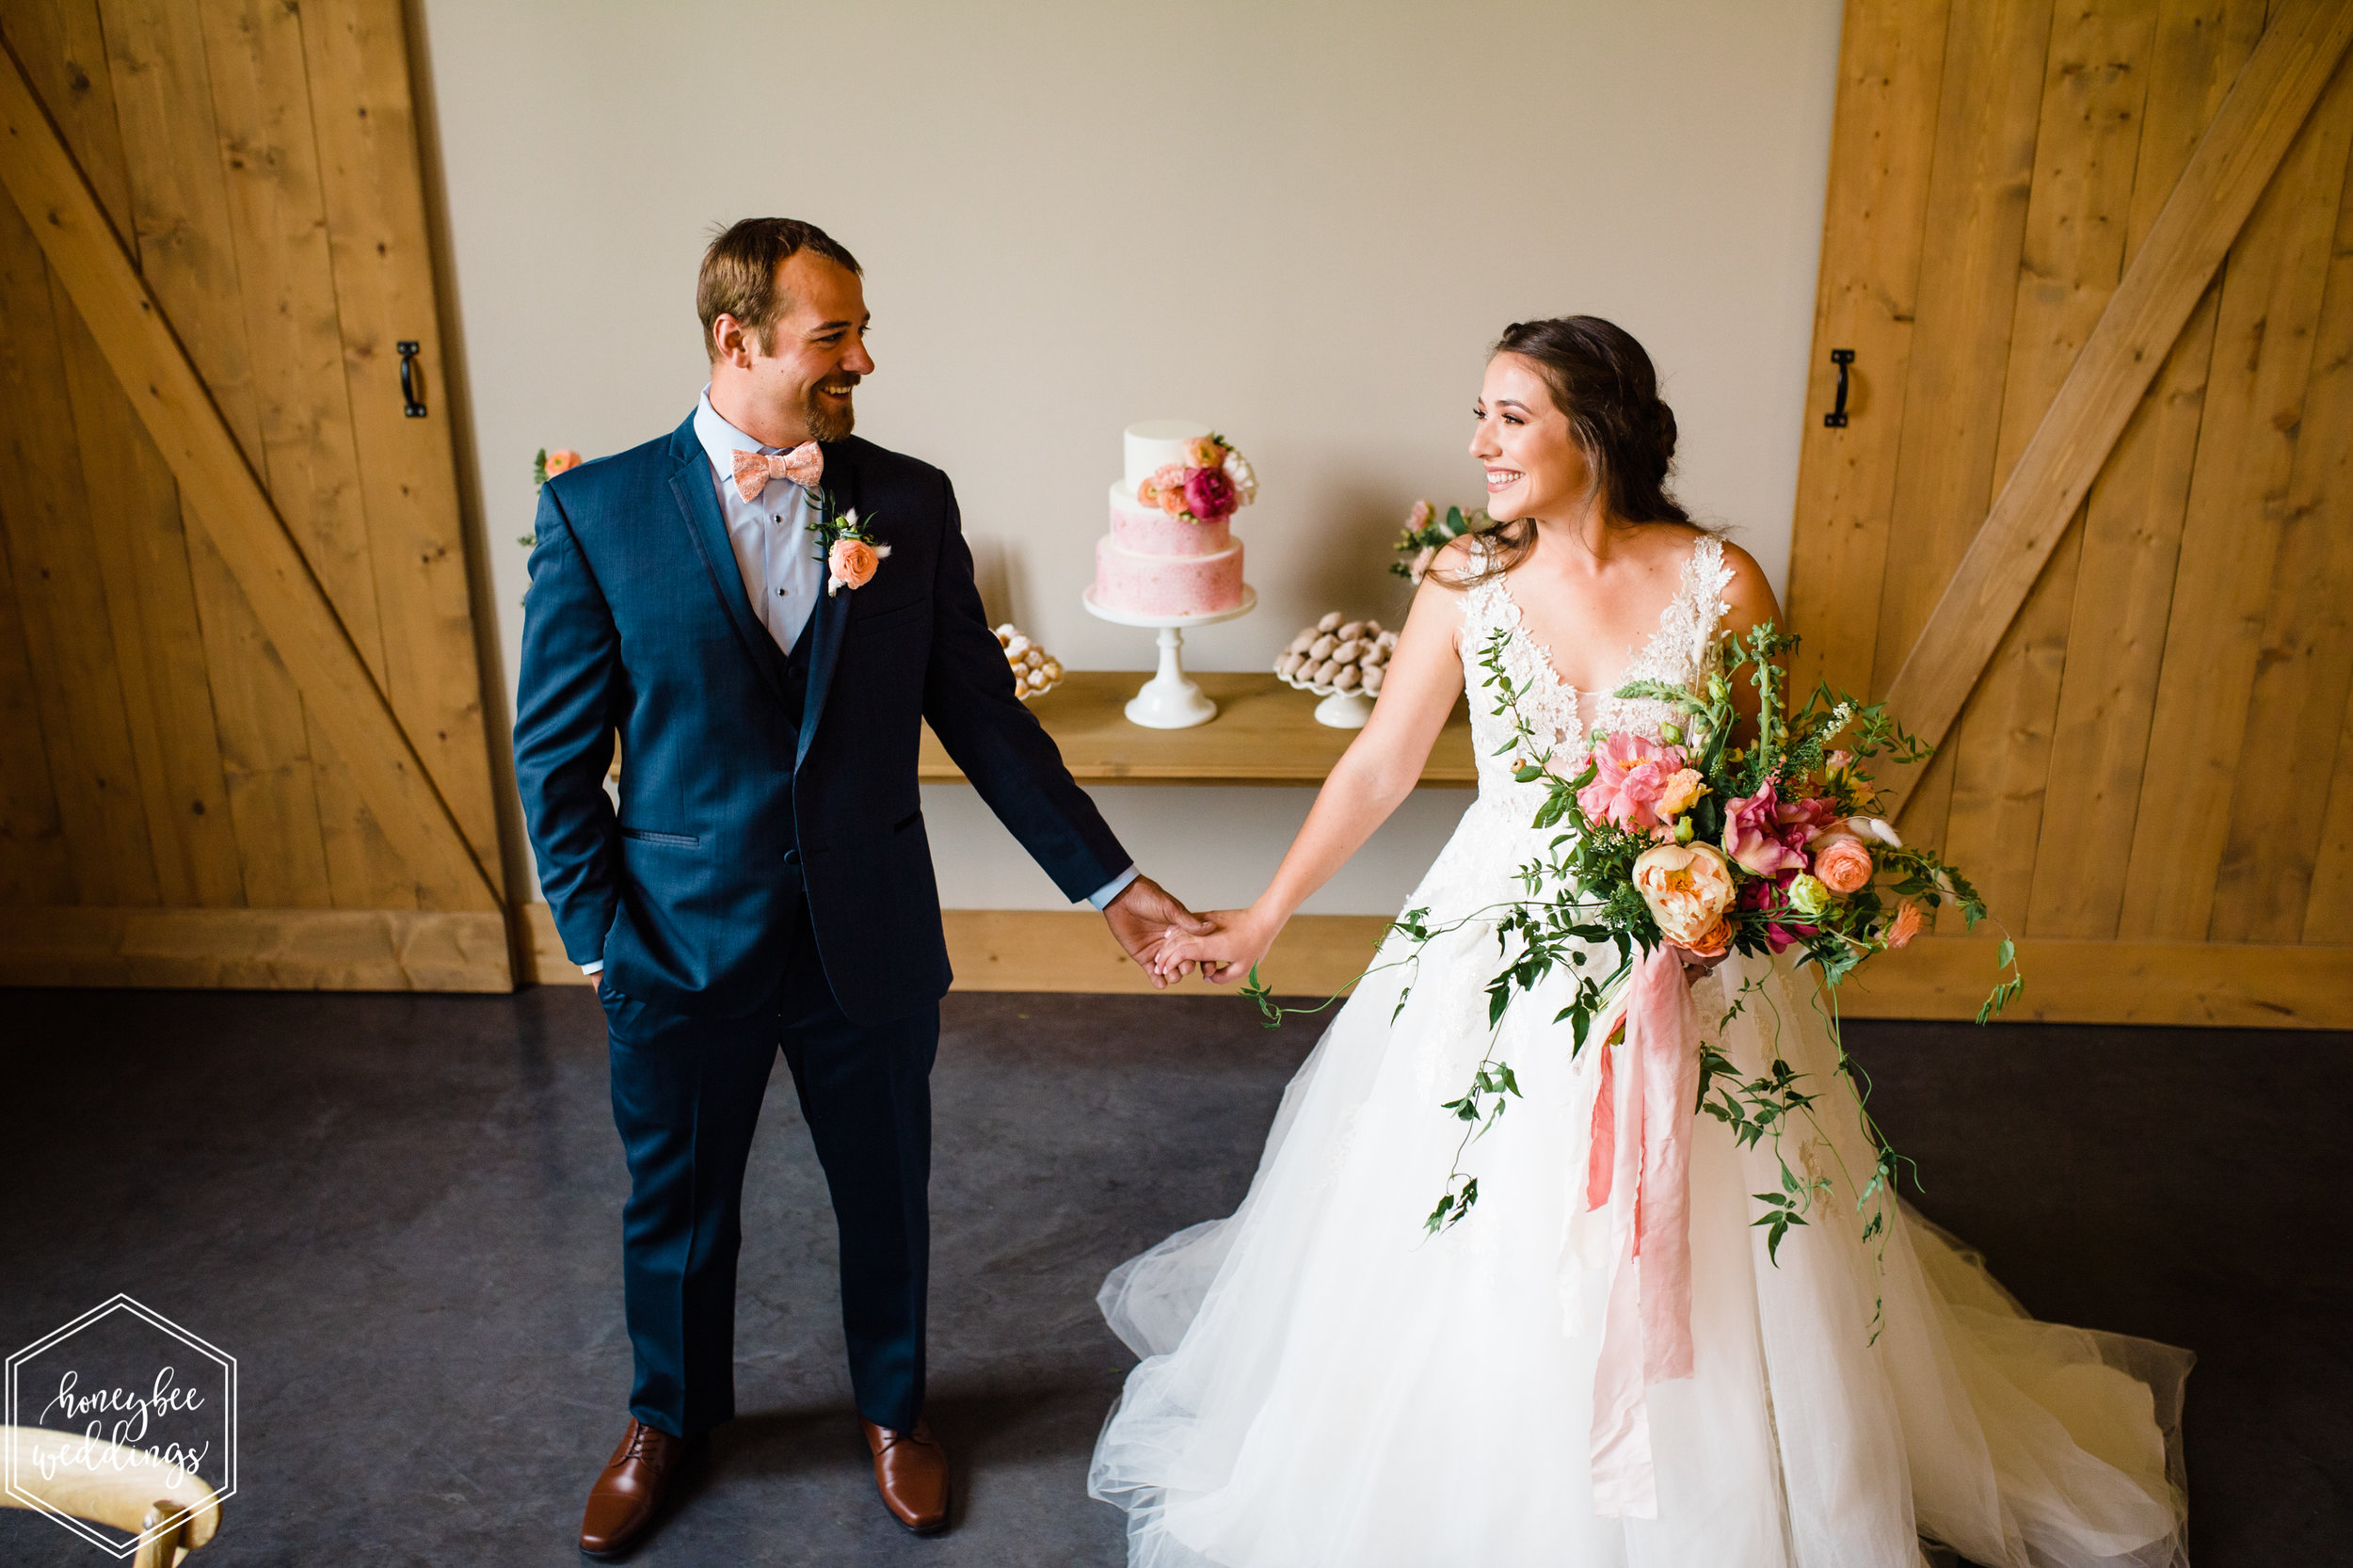 020Coral Mountain Wedding at White Raven_Honeybee Weddings_May 23, 2019-60.jpg